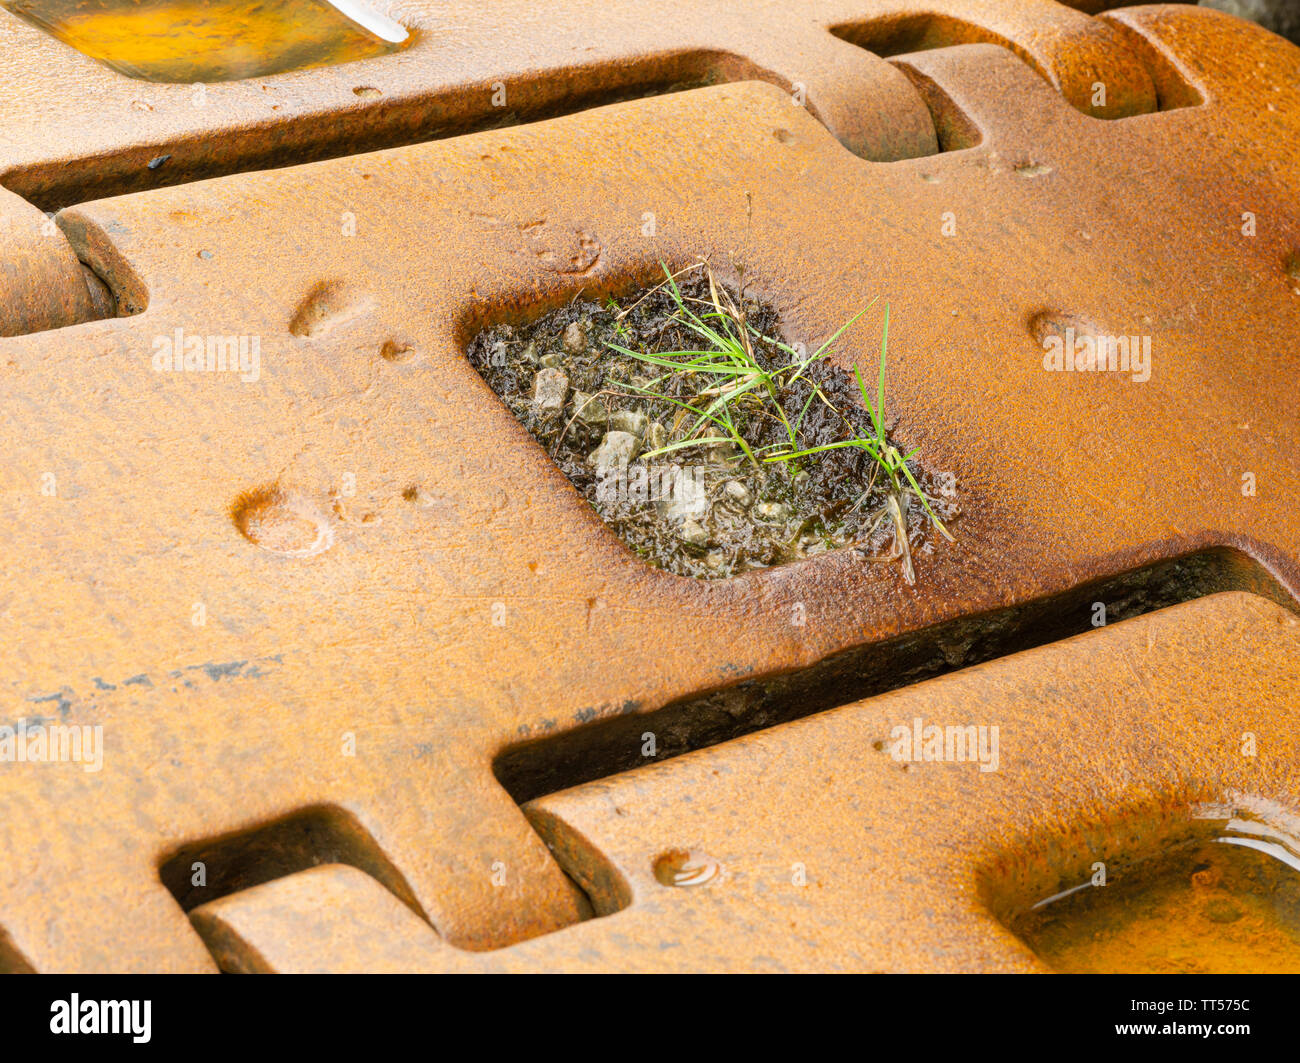 Grass growing in a bulldozer track against the odds!! - Stock Image